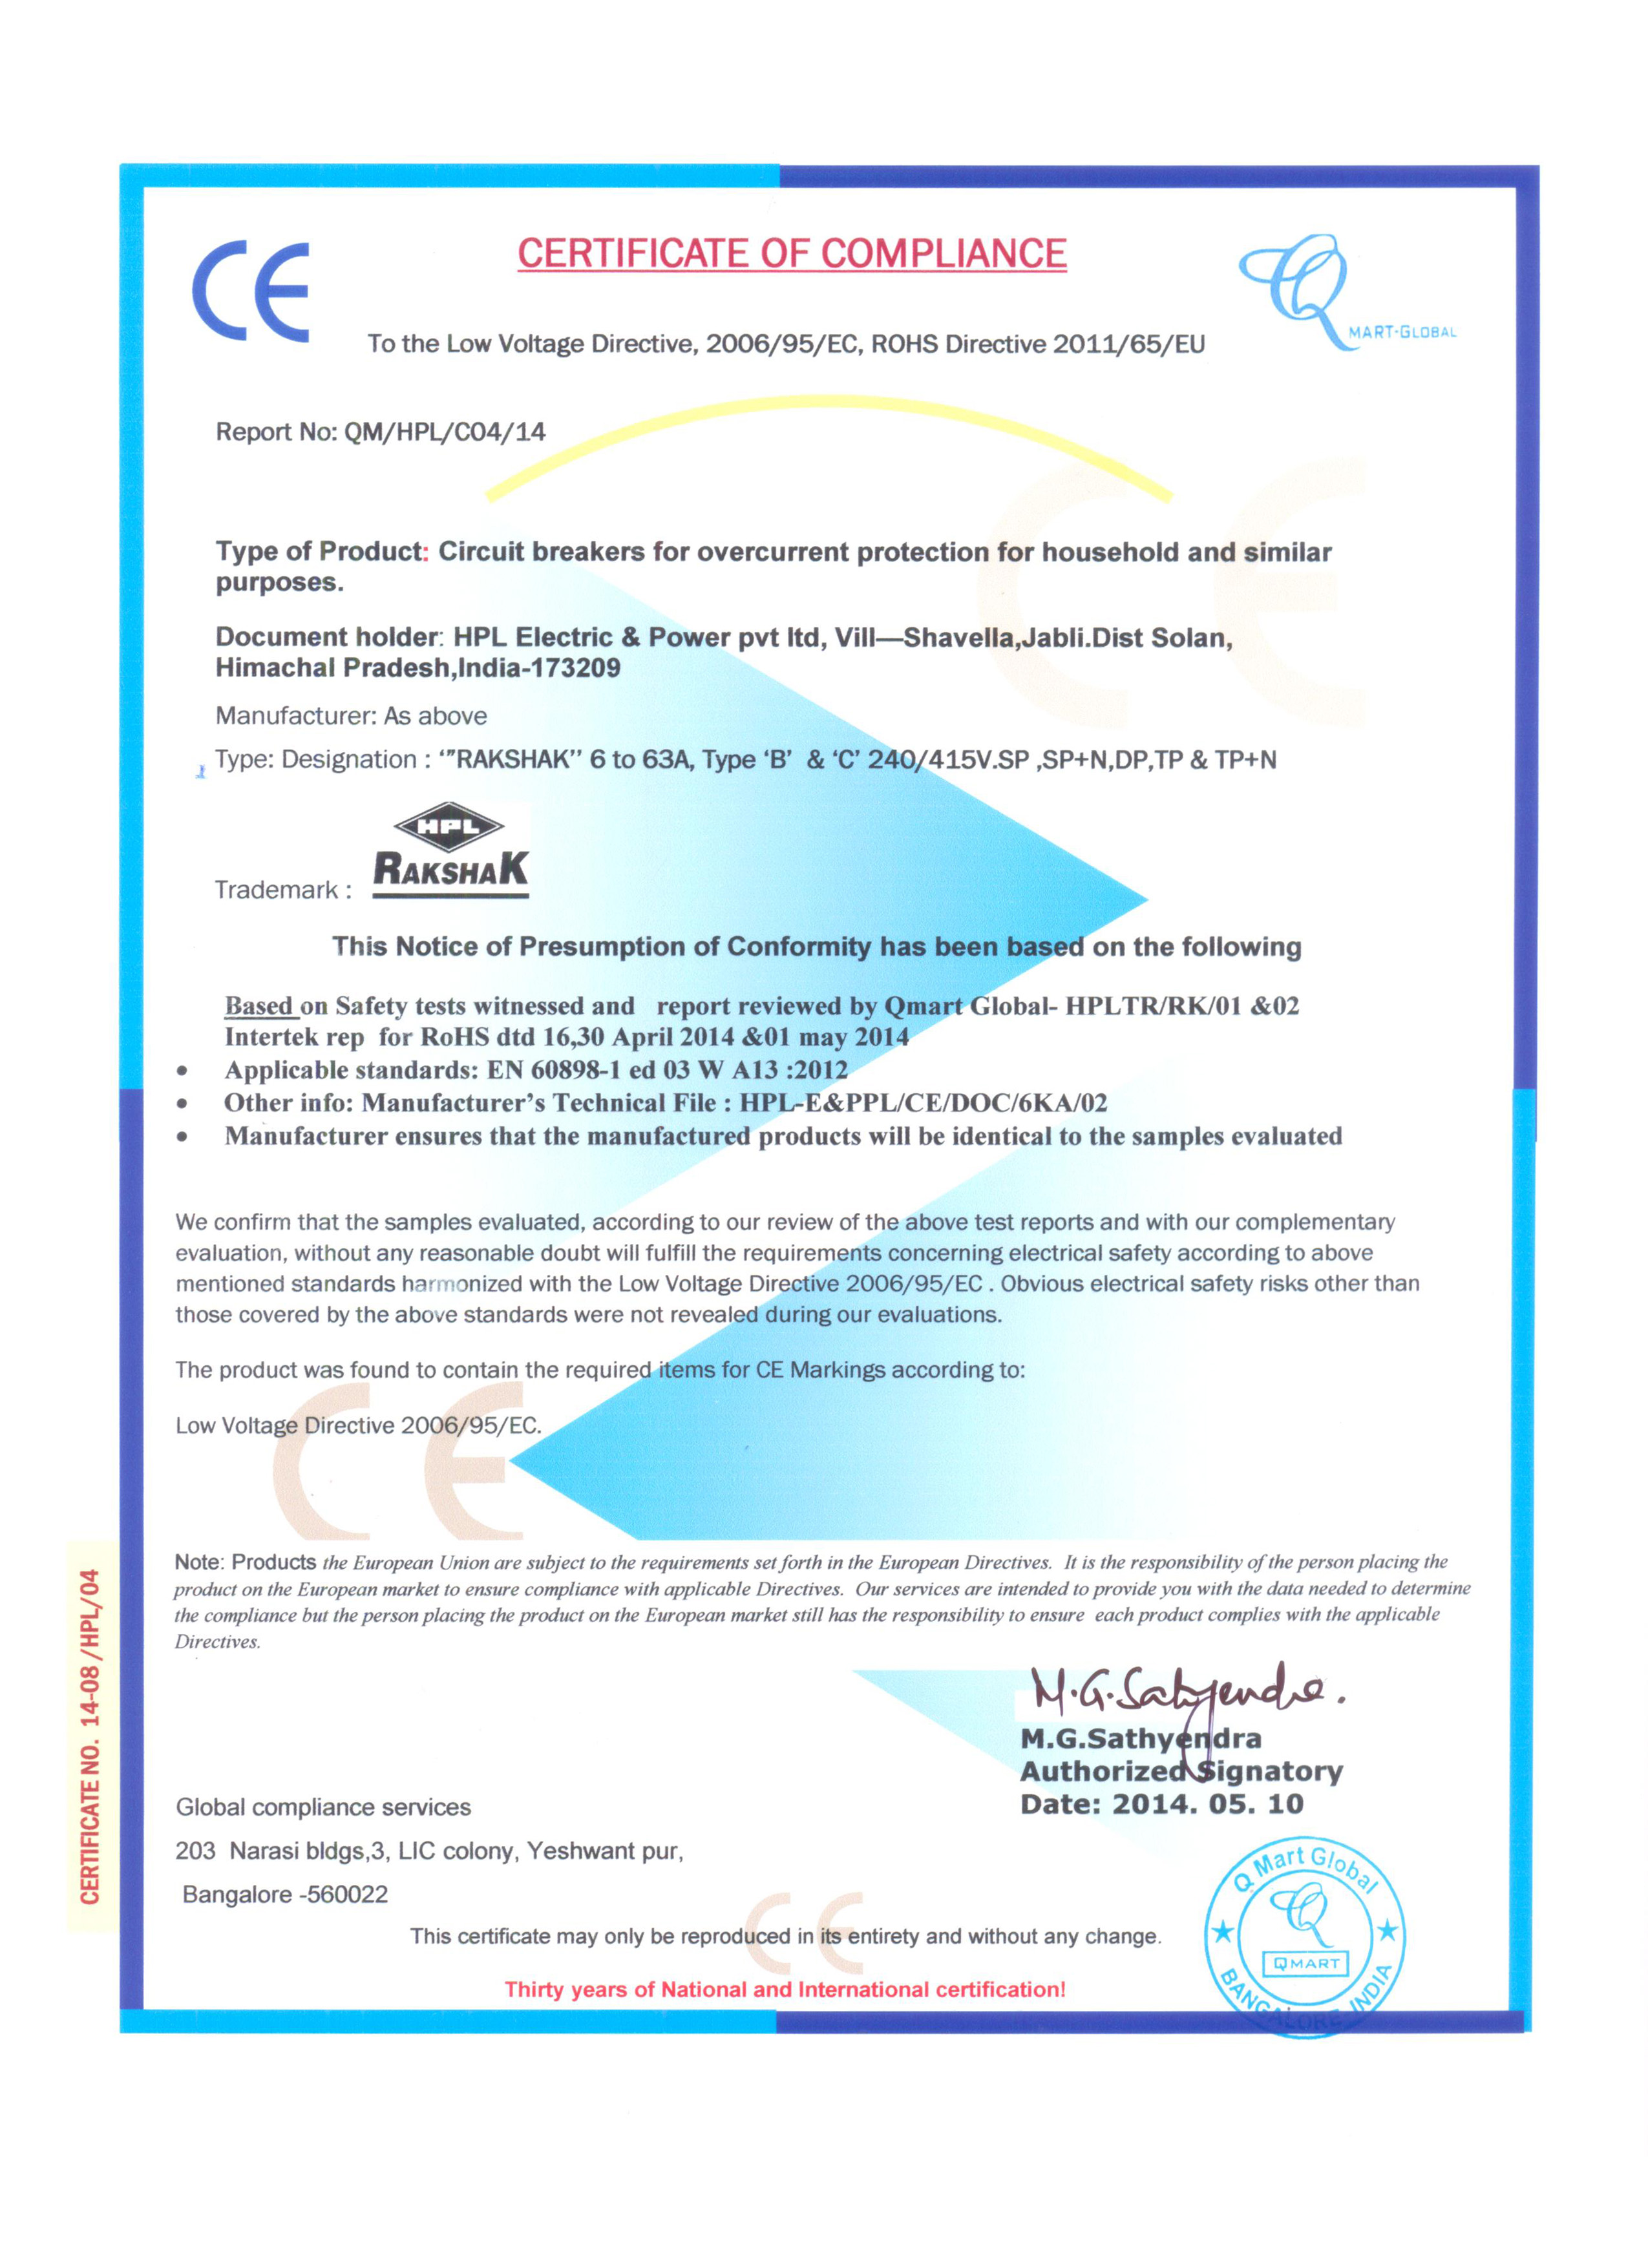 About us hpl electric power pvt ltd for Electrical isolation certificate template